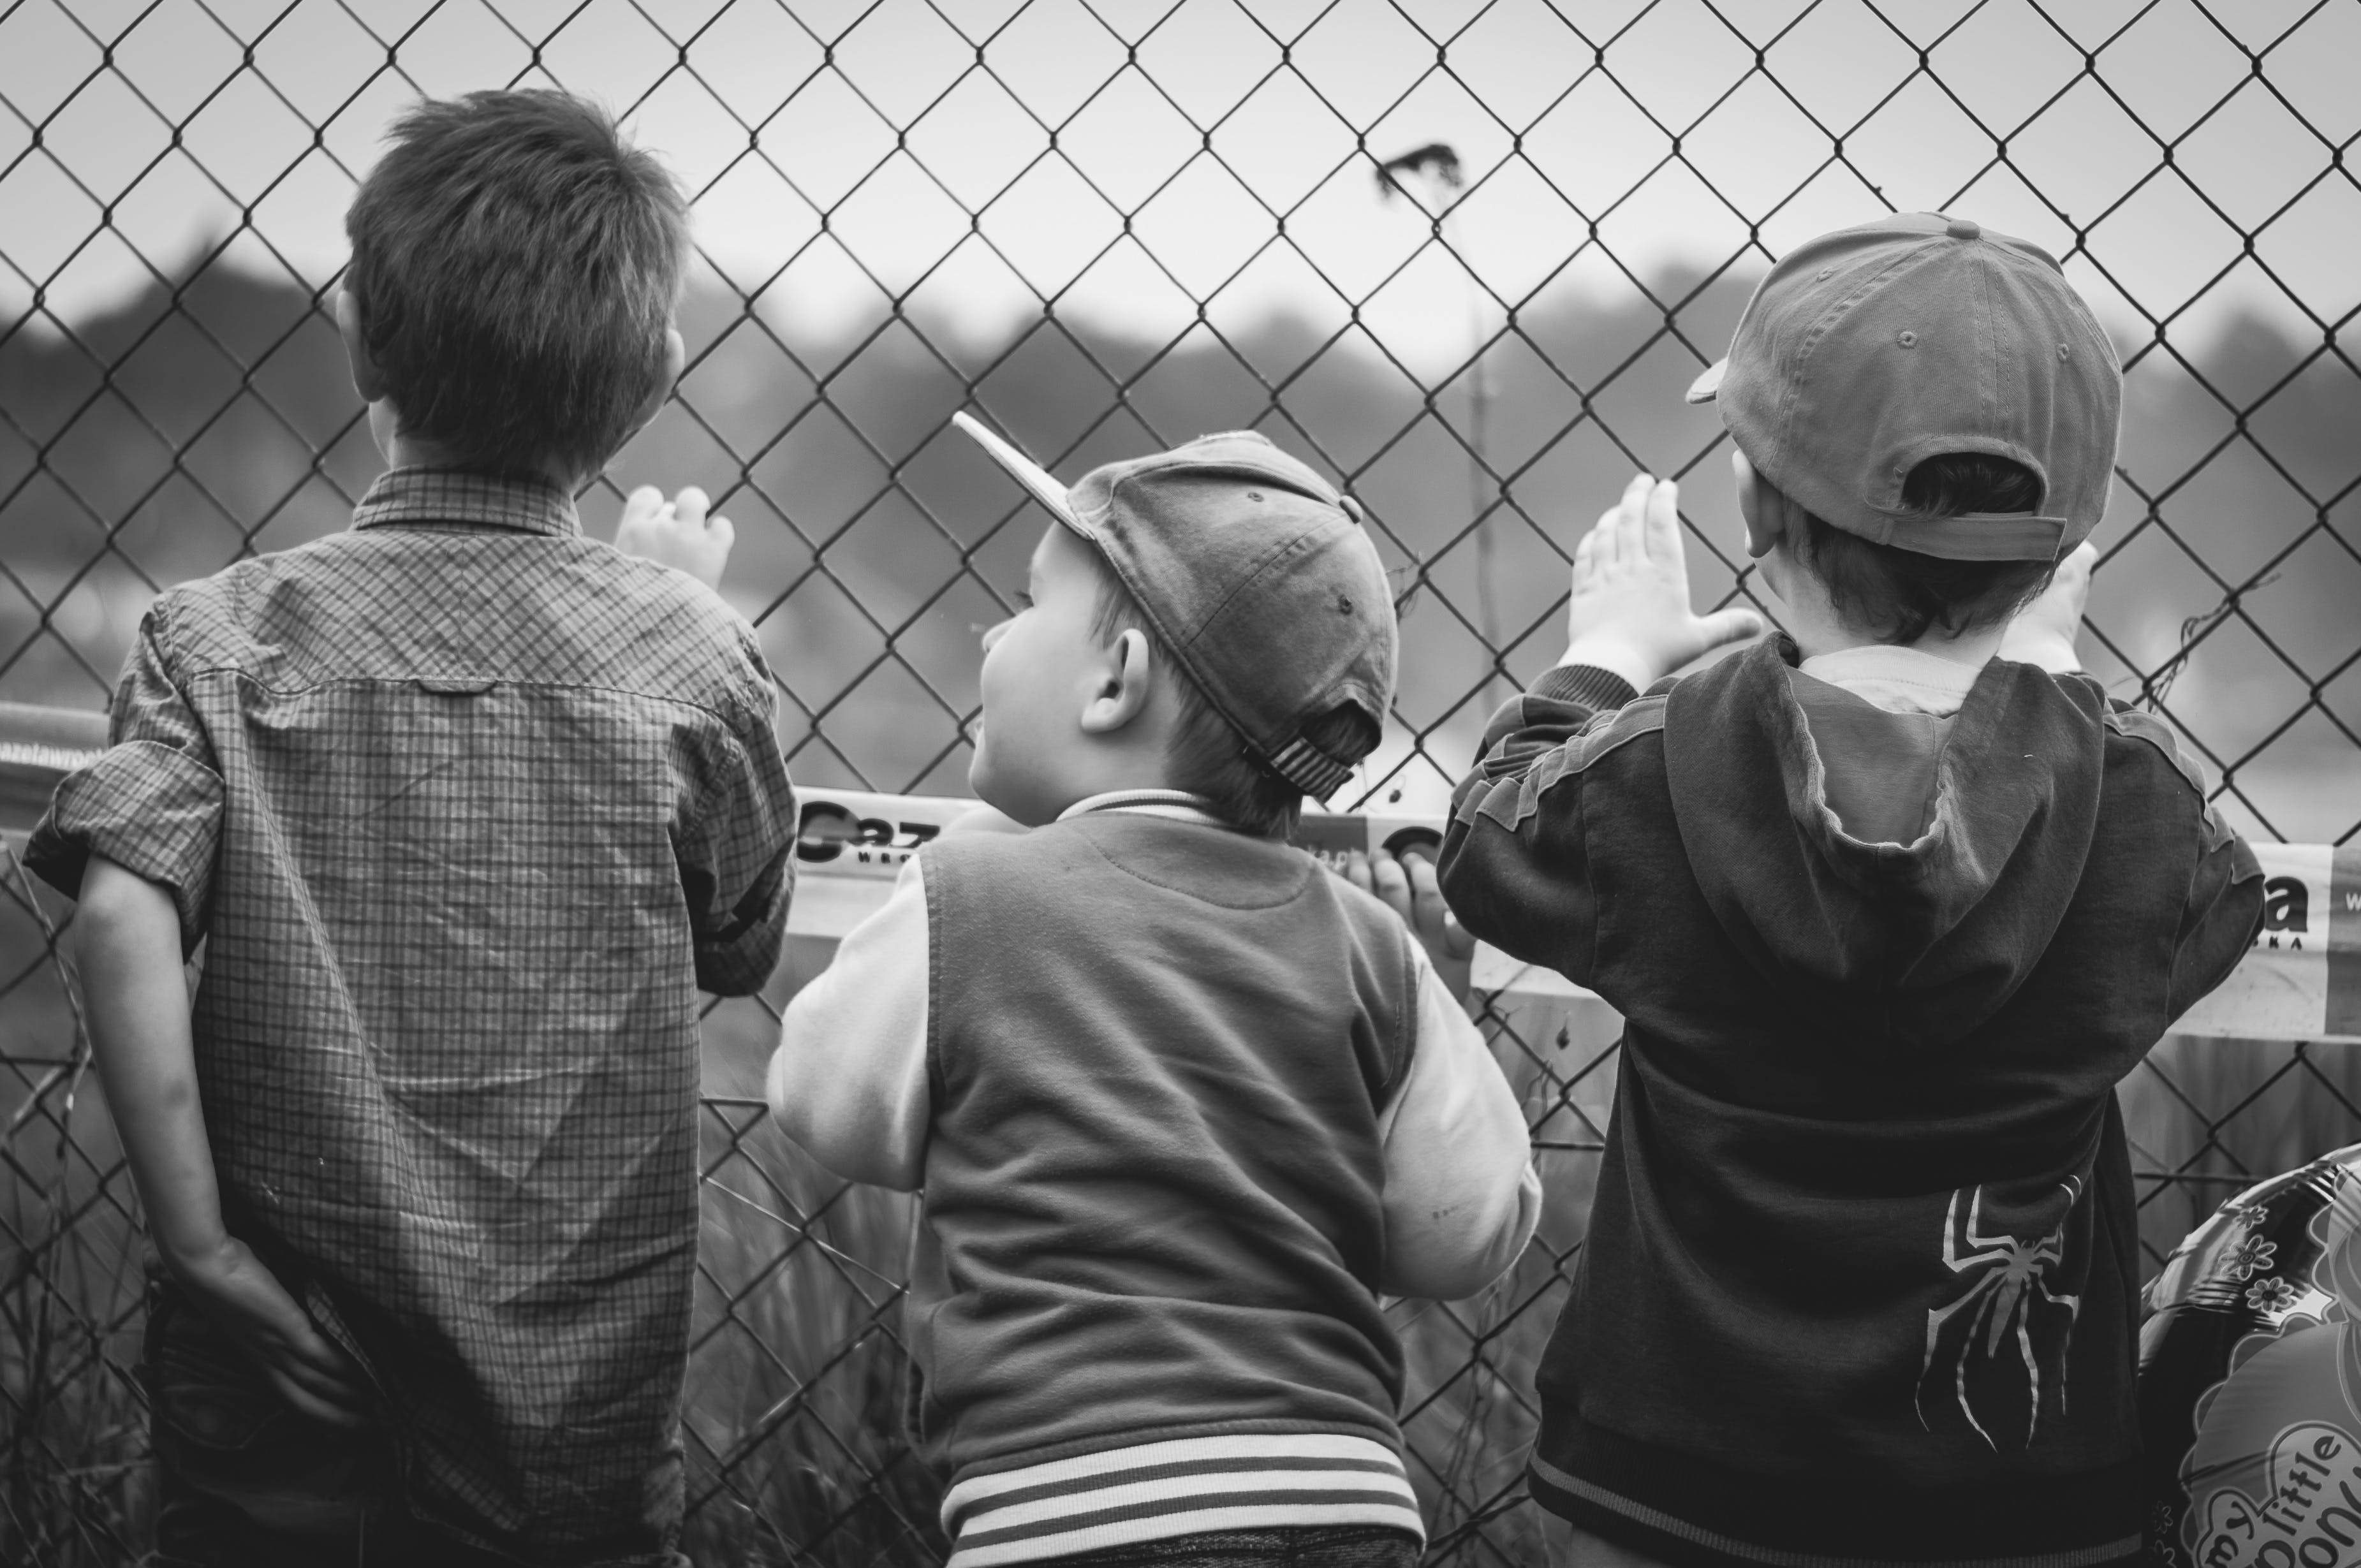 Grayscale Photography of Three Boys Facing Towards Fence